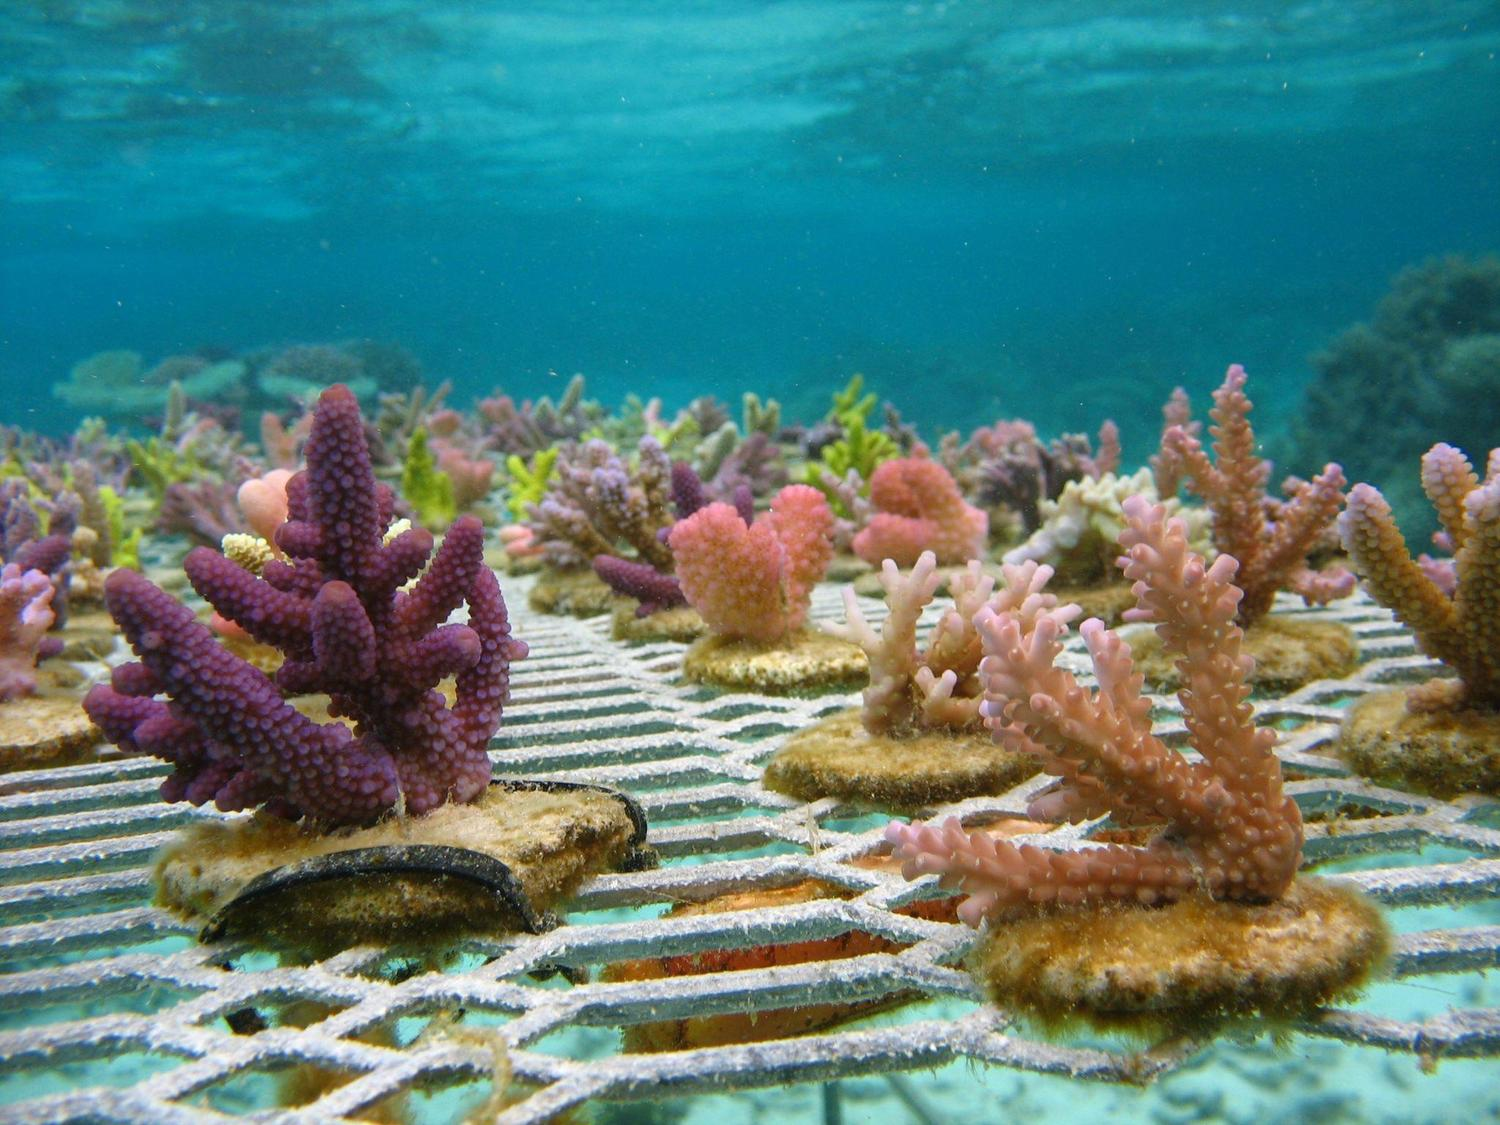 Coral Vita Plans To Restore The Worlds Coral Reefs With Land Based Farms#post_comments on Tiny House Plans